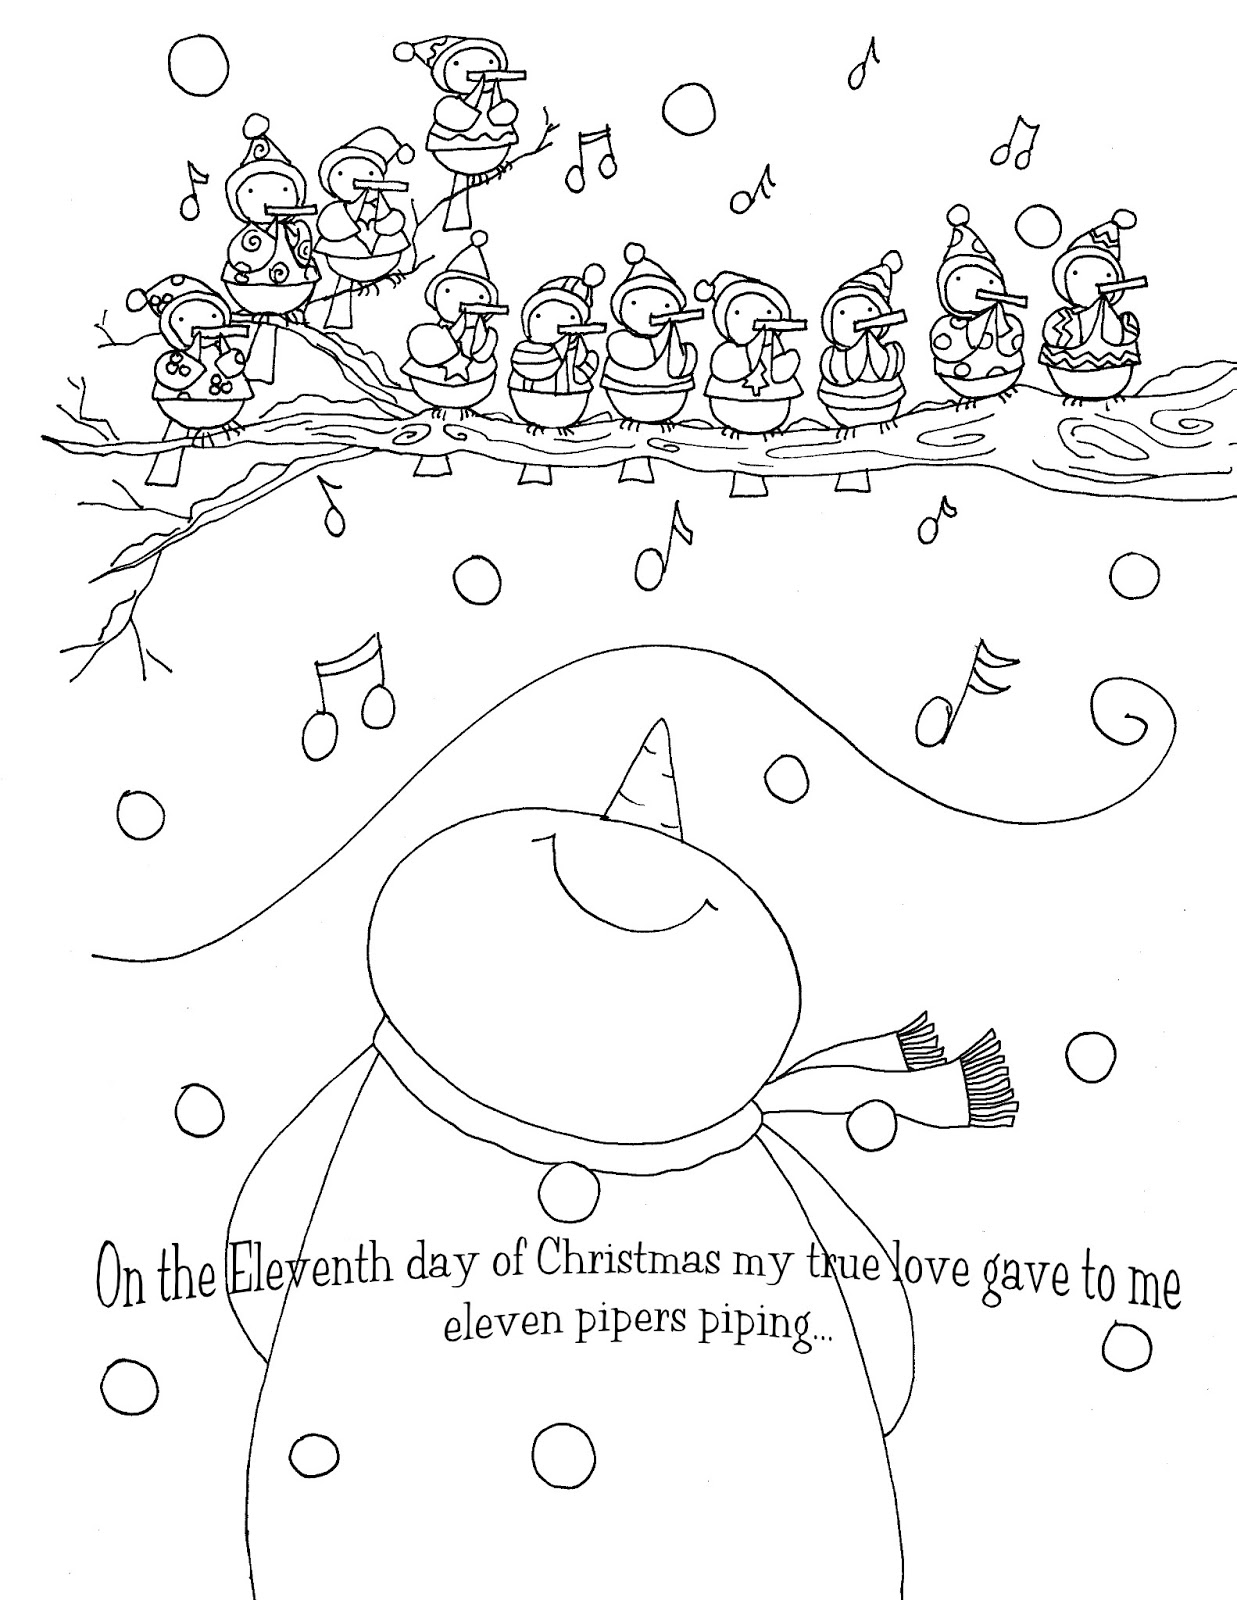 free dearie dolls digi stamps  on the eleventh day of